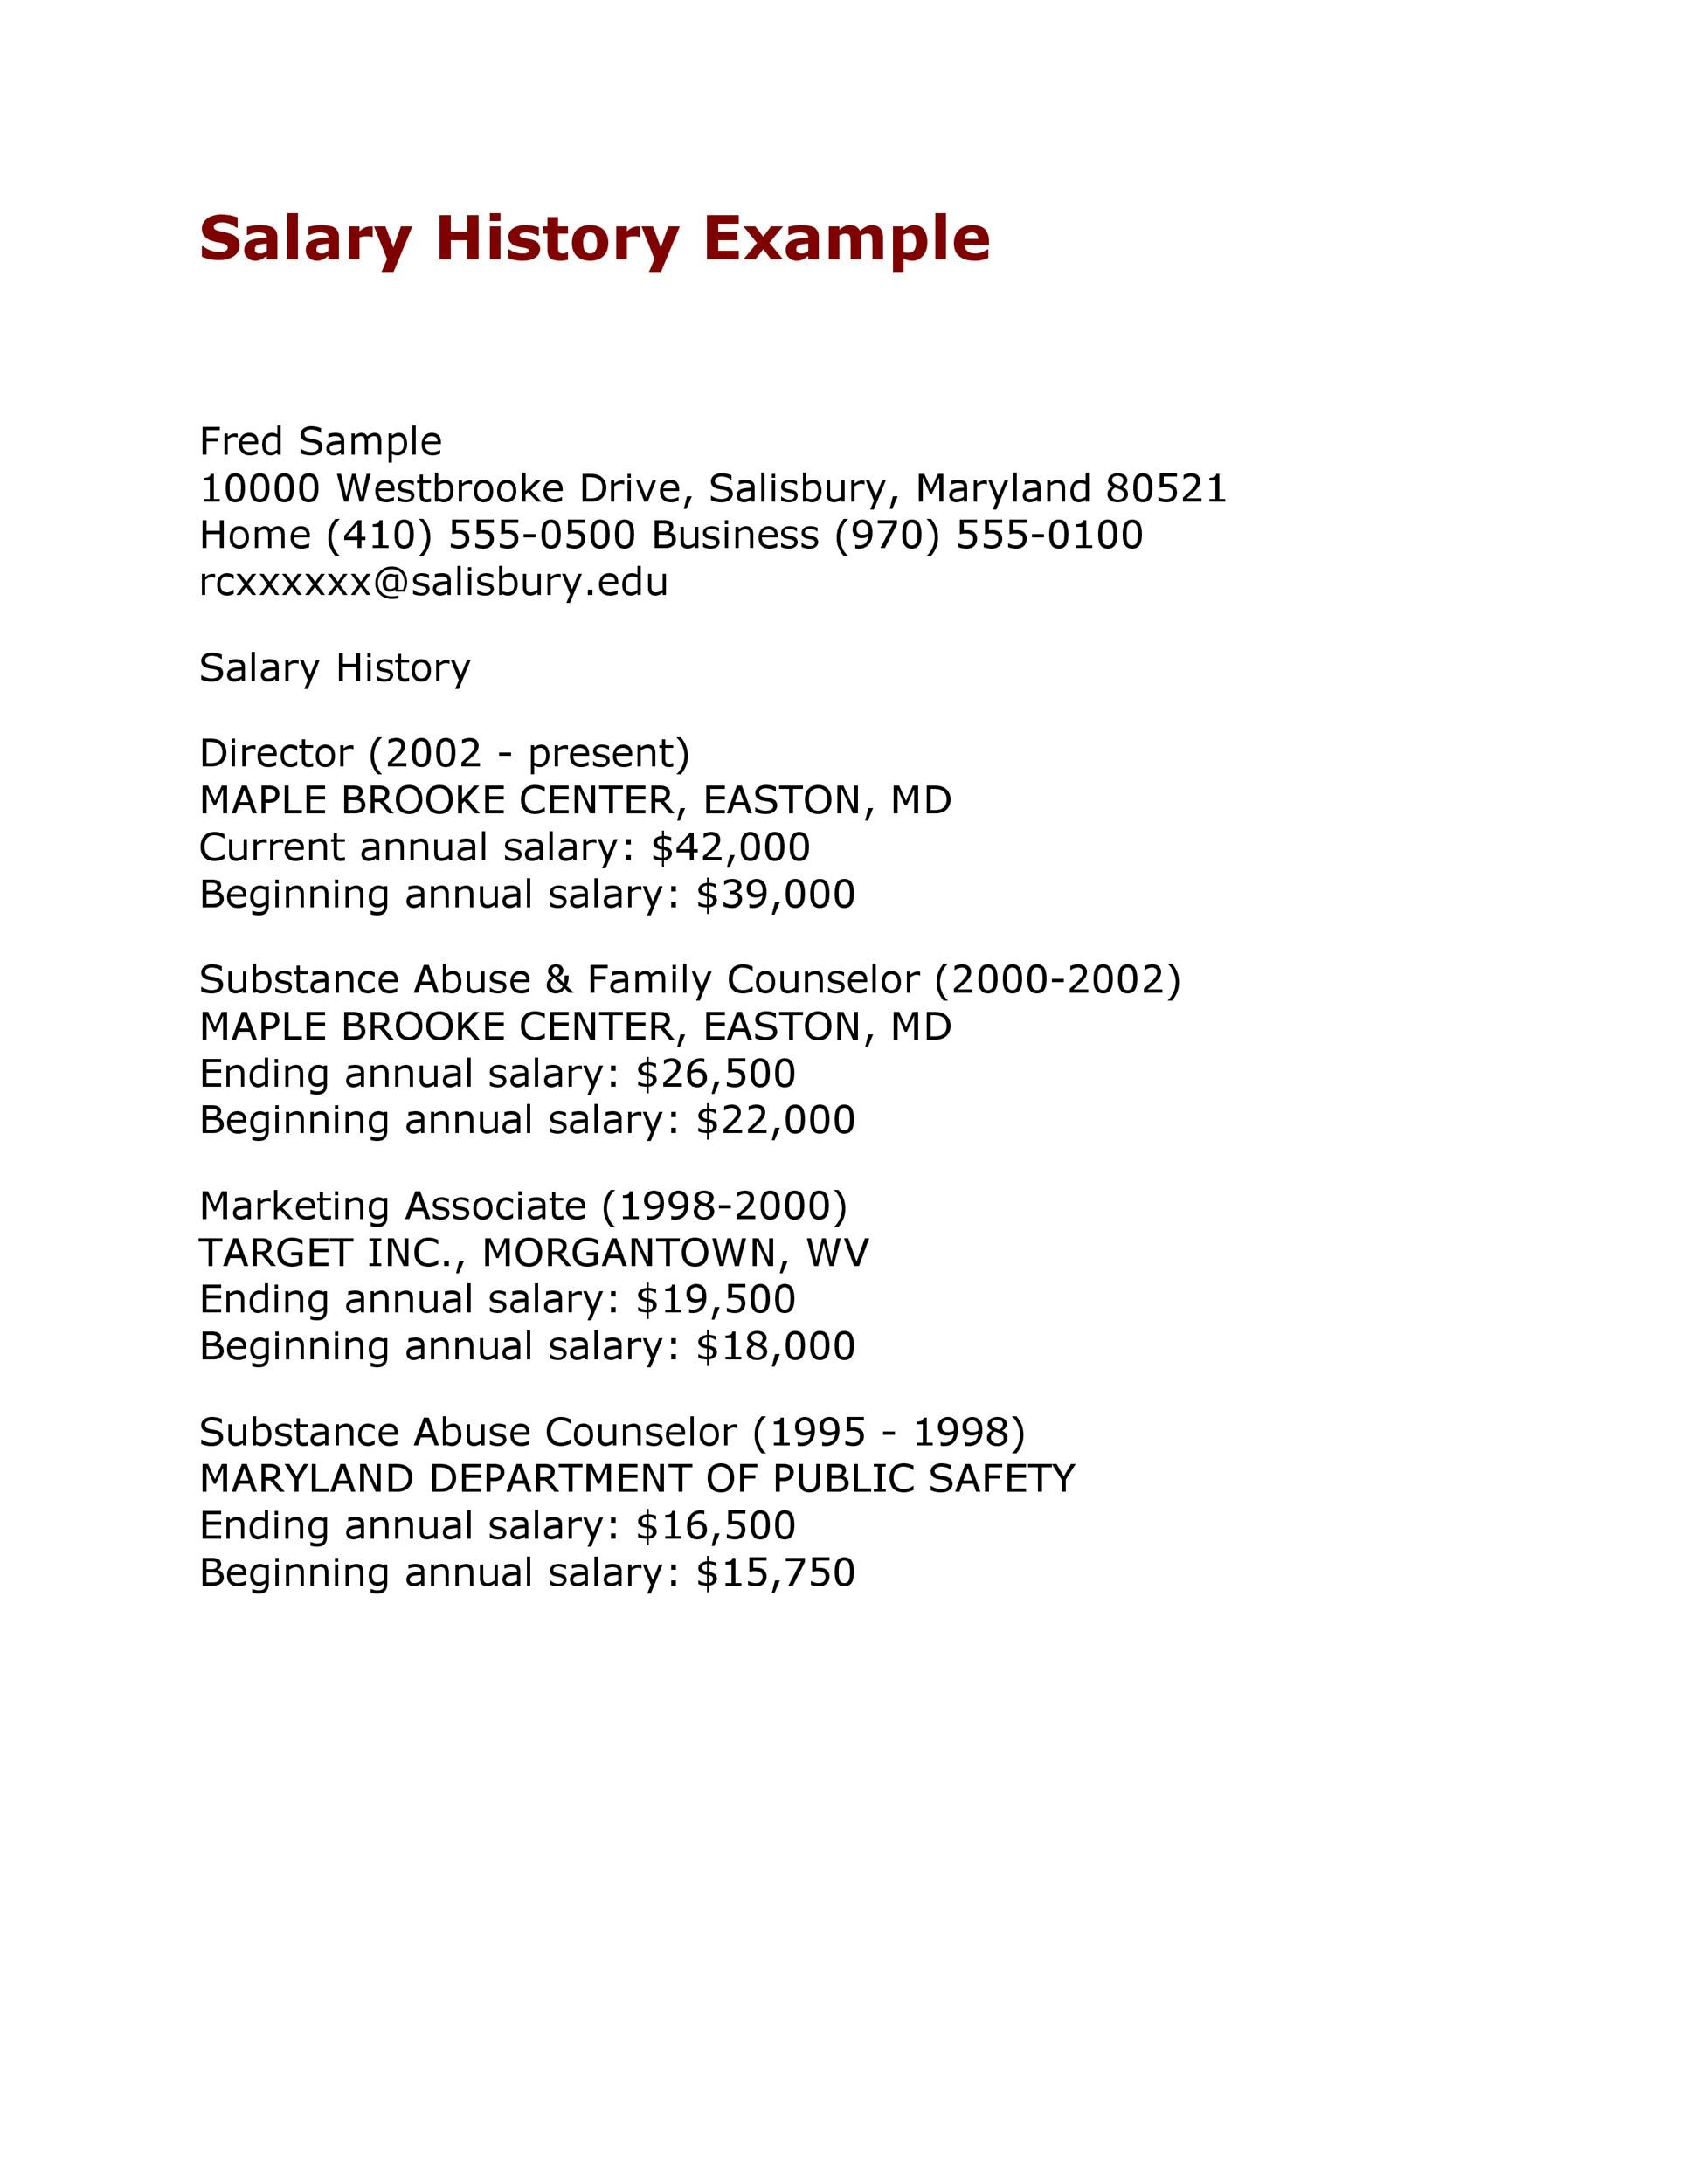 salary history template hourly 19 great salary history templates samples template lab